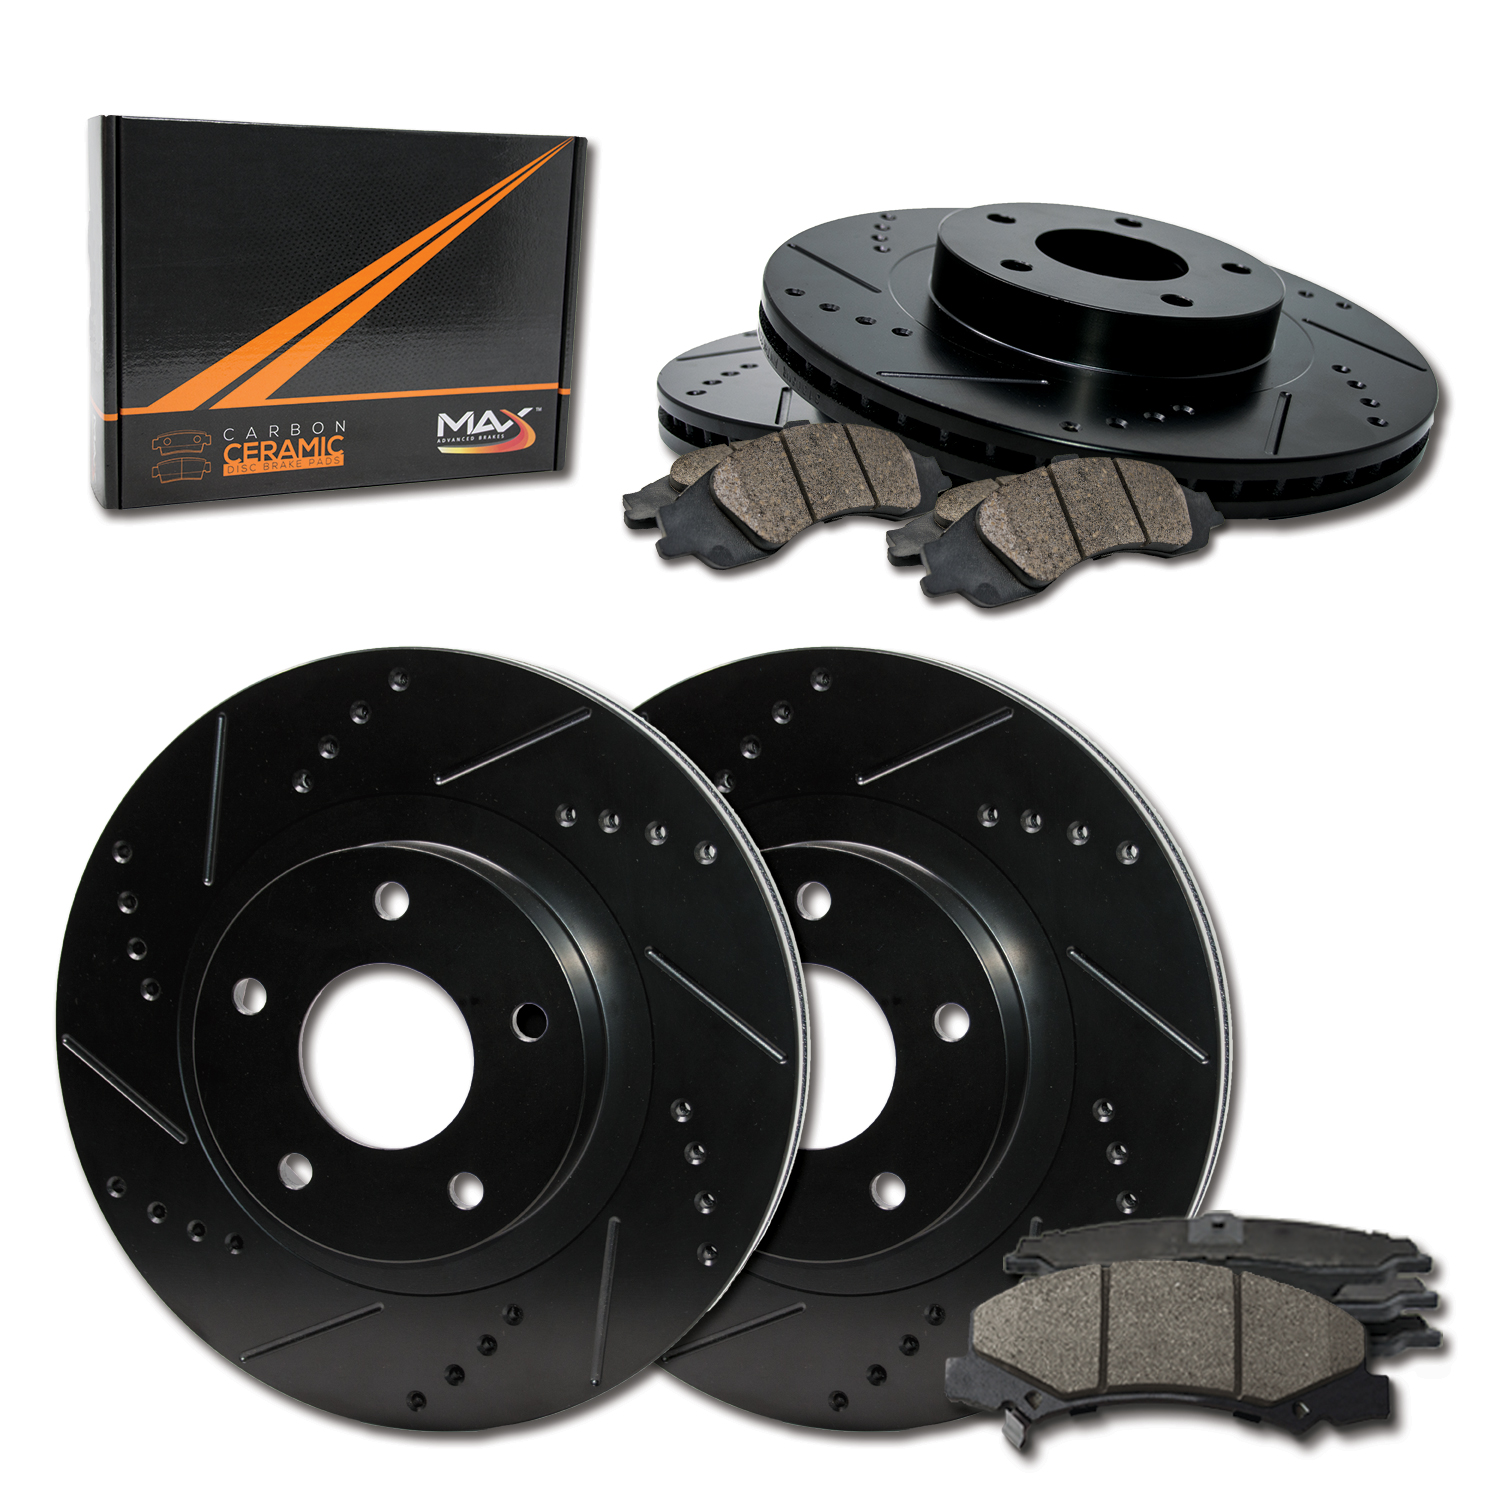 OE Series Rotors + Ceramic Pads Fits: 1999 99 2000 00 2001 01 2002 02 Pontiac Grand Am KM012441 Max Brakes Front Supreme Brake Kit